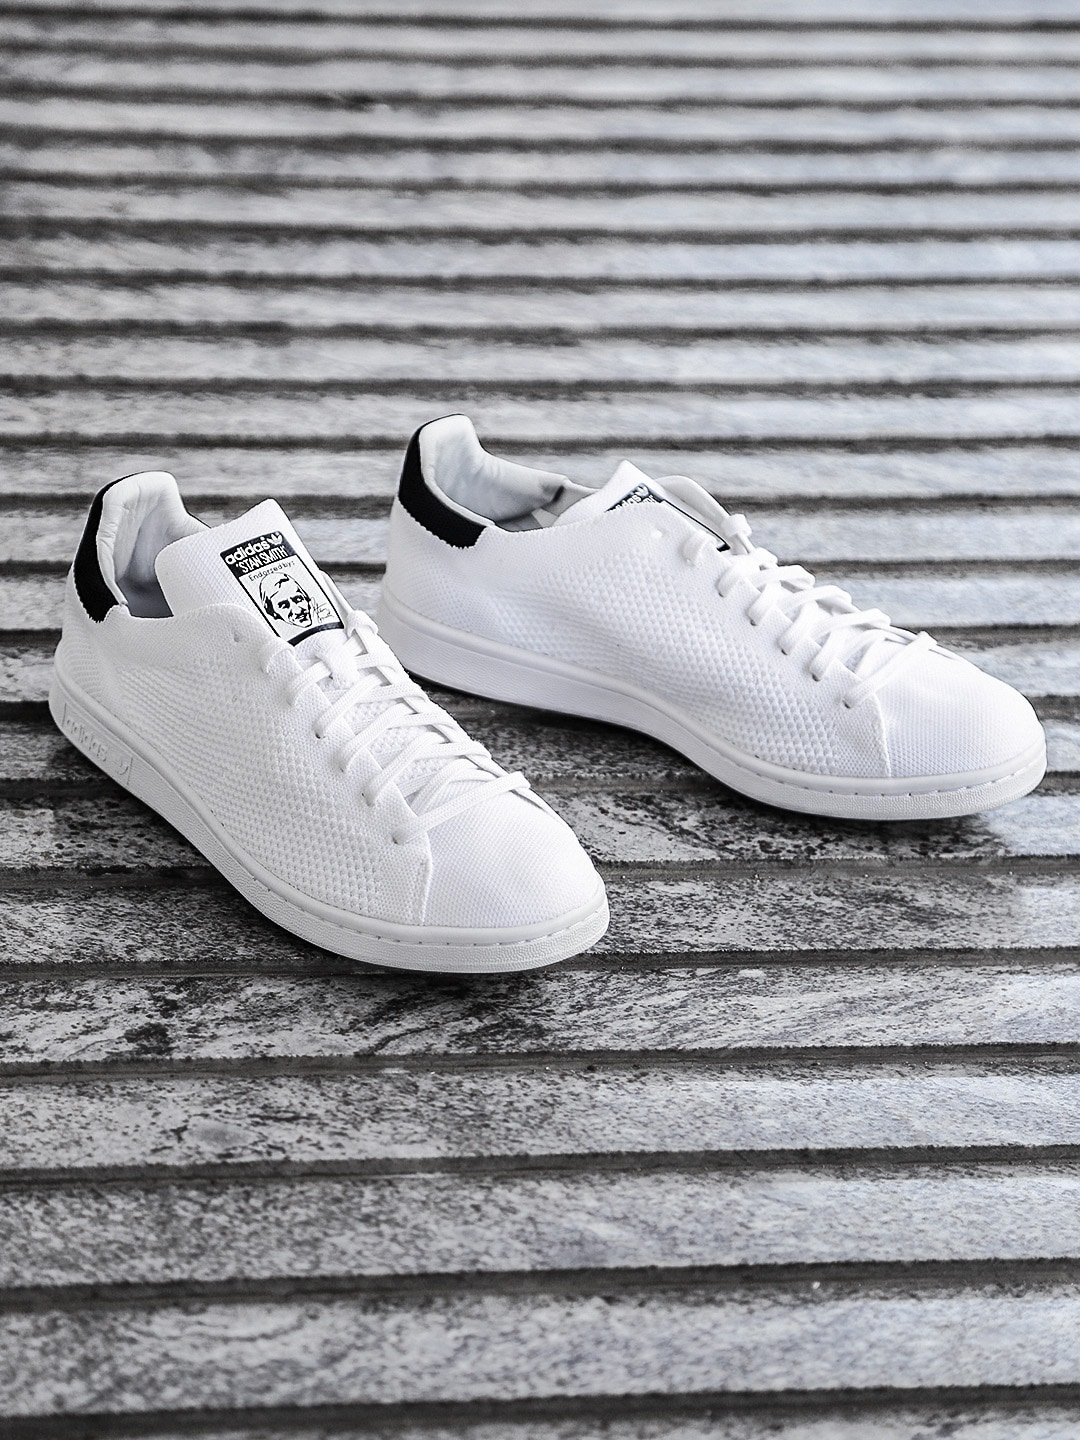 Adidas Stan Smith Sneakers - Buy Stan Smith Shoes and Sneakers Online in  India - Myntra 21ebb0c51